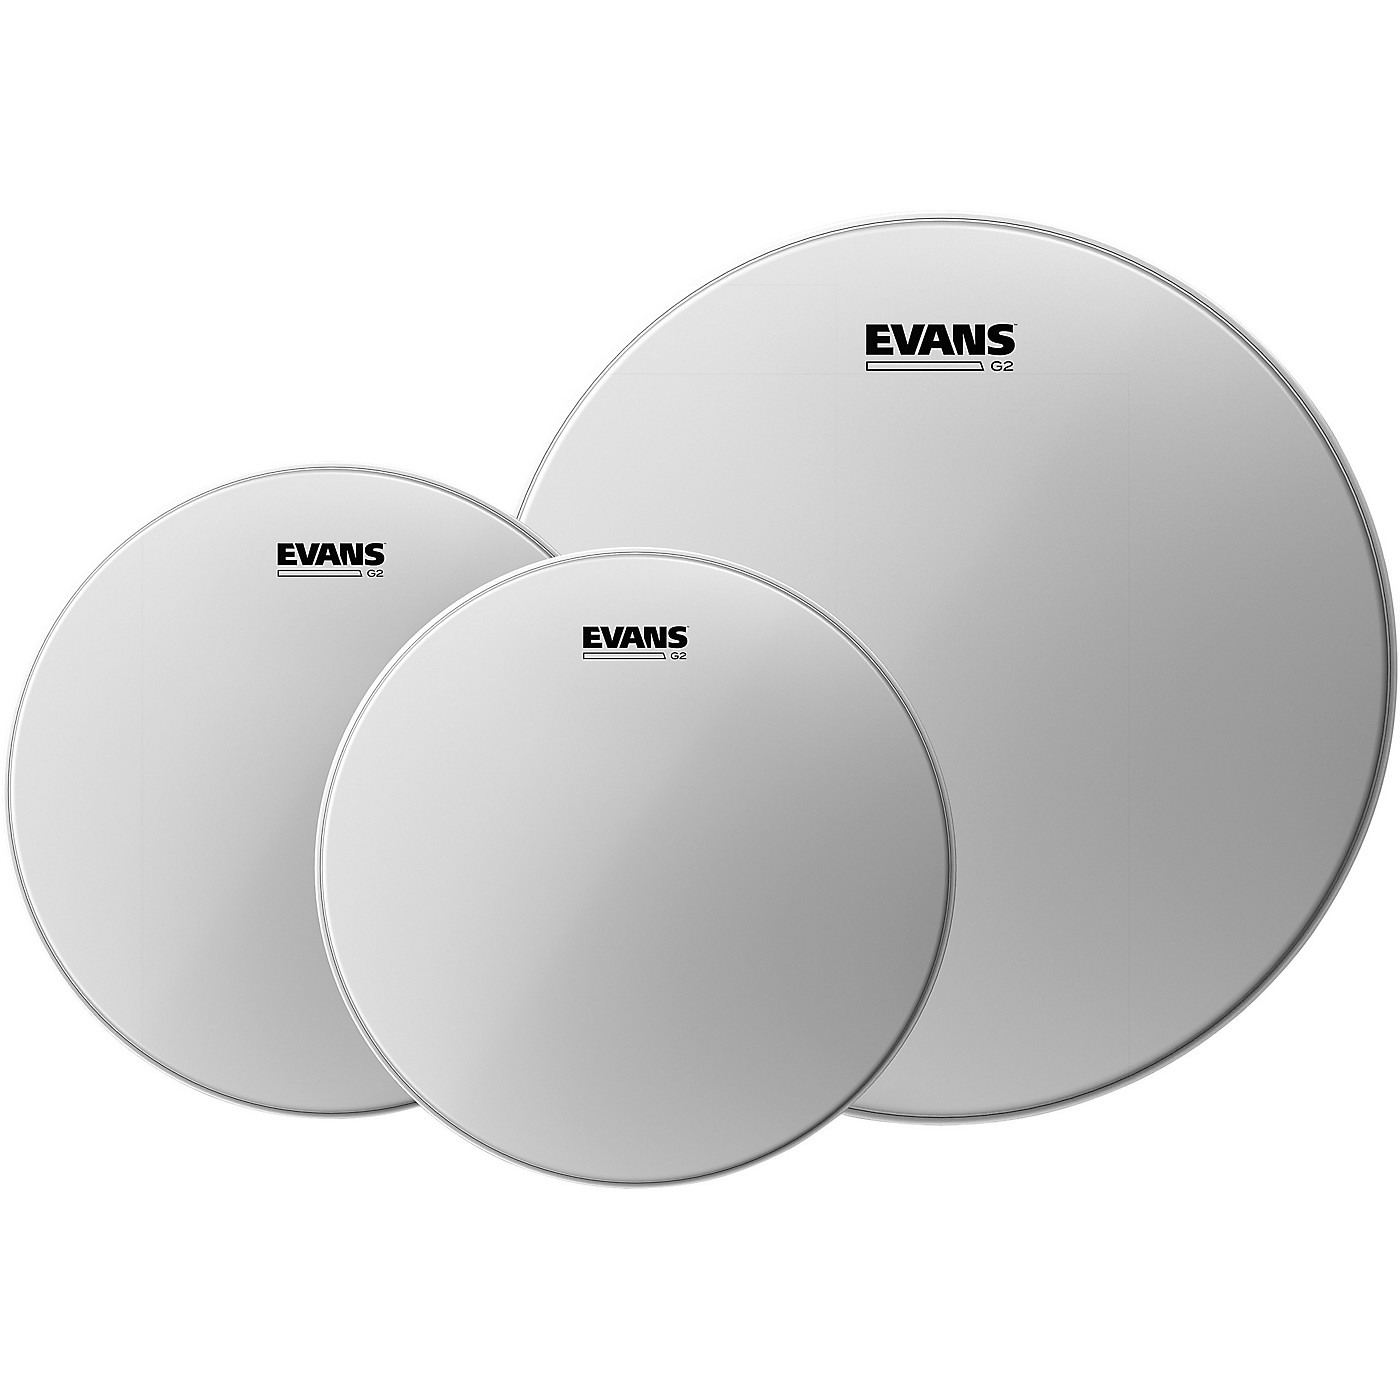 Evans G2 Coated Drumhead Pack thumbnail